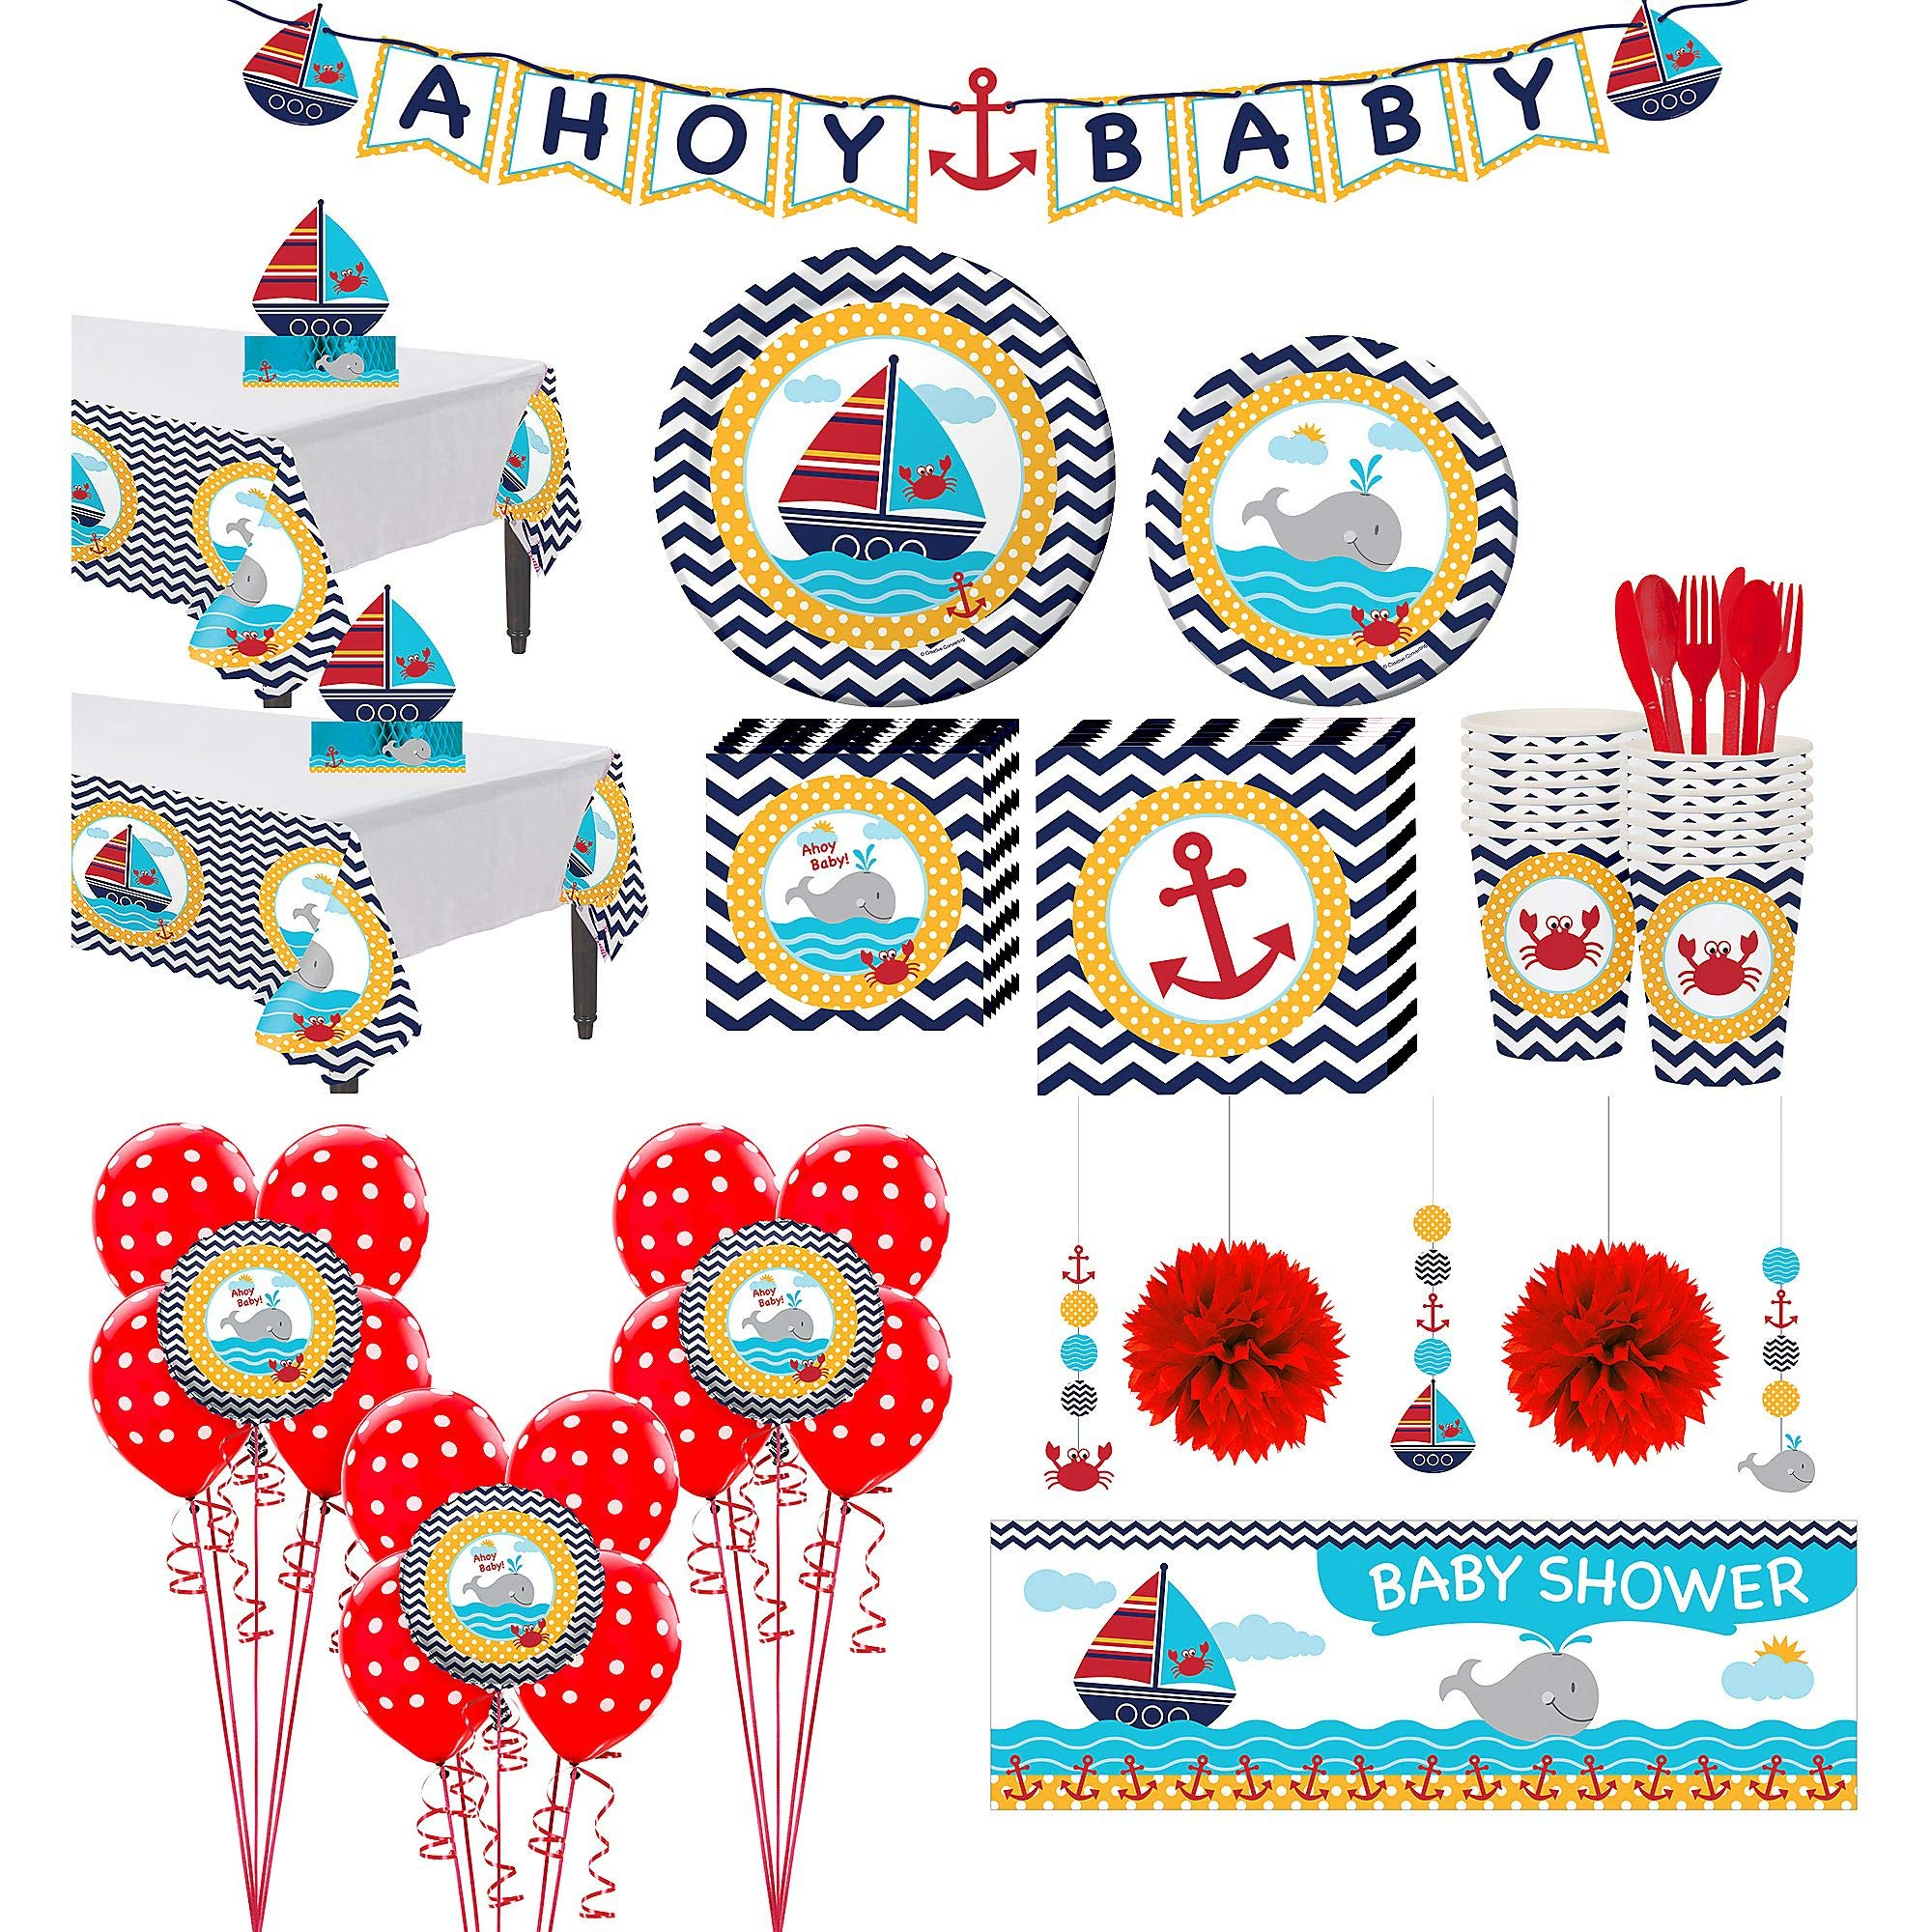 Party City Ahoy Nautical Premium Baby Shower Kit for 32 Guests, Includes Decorations and Tableware